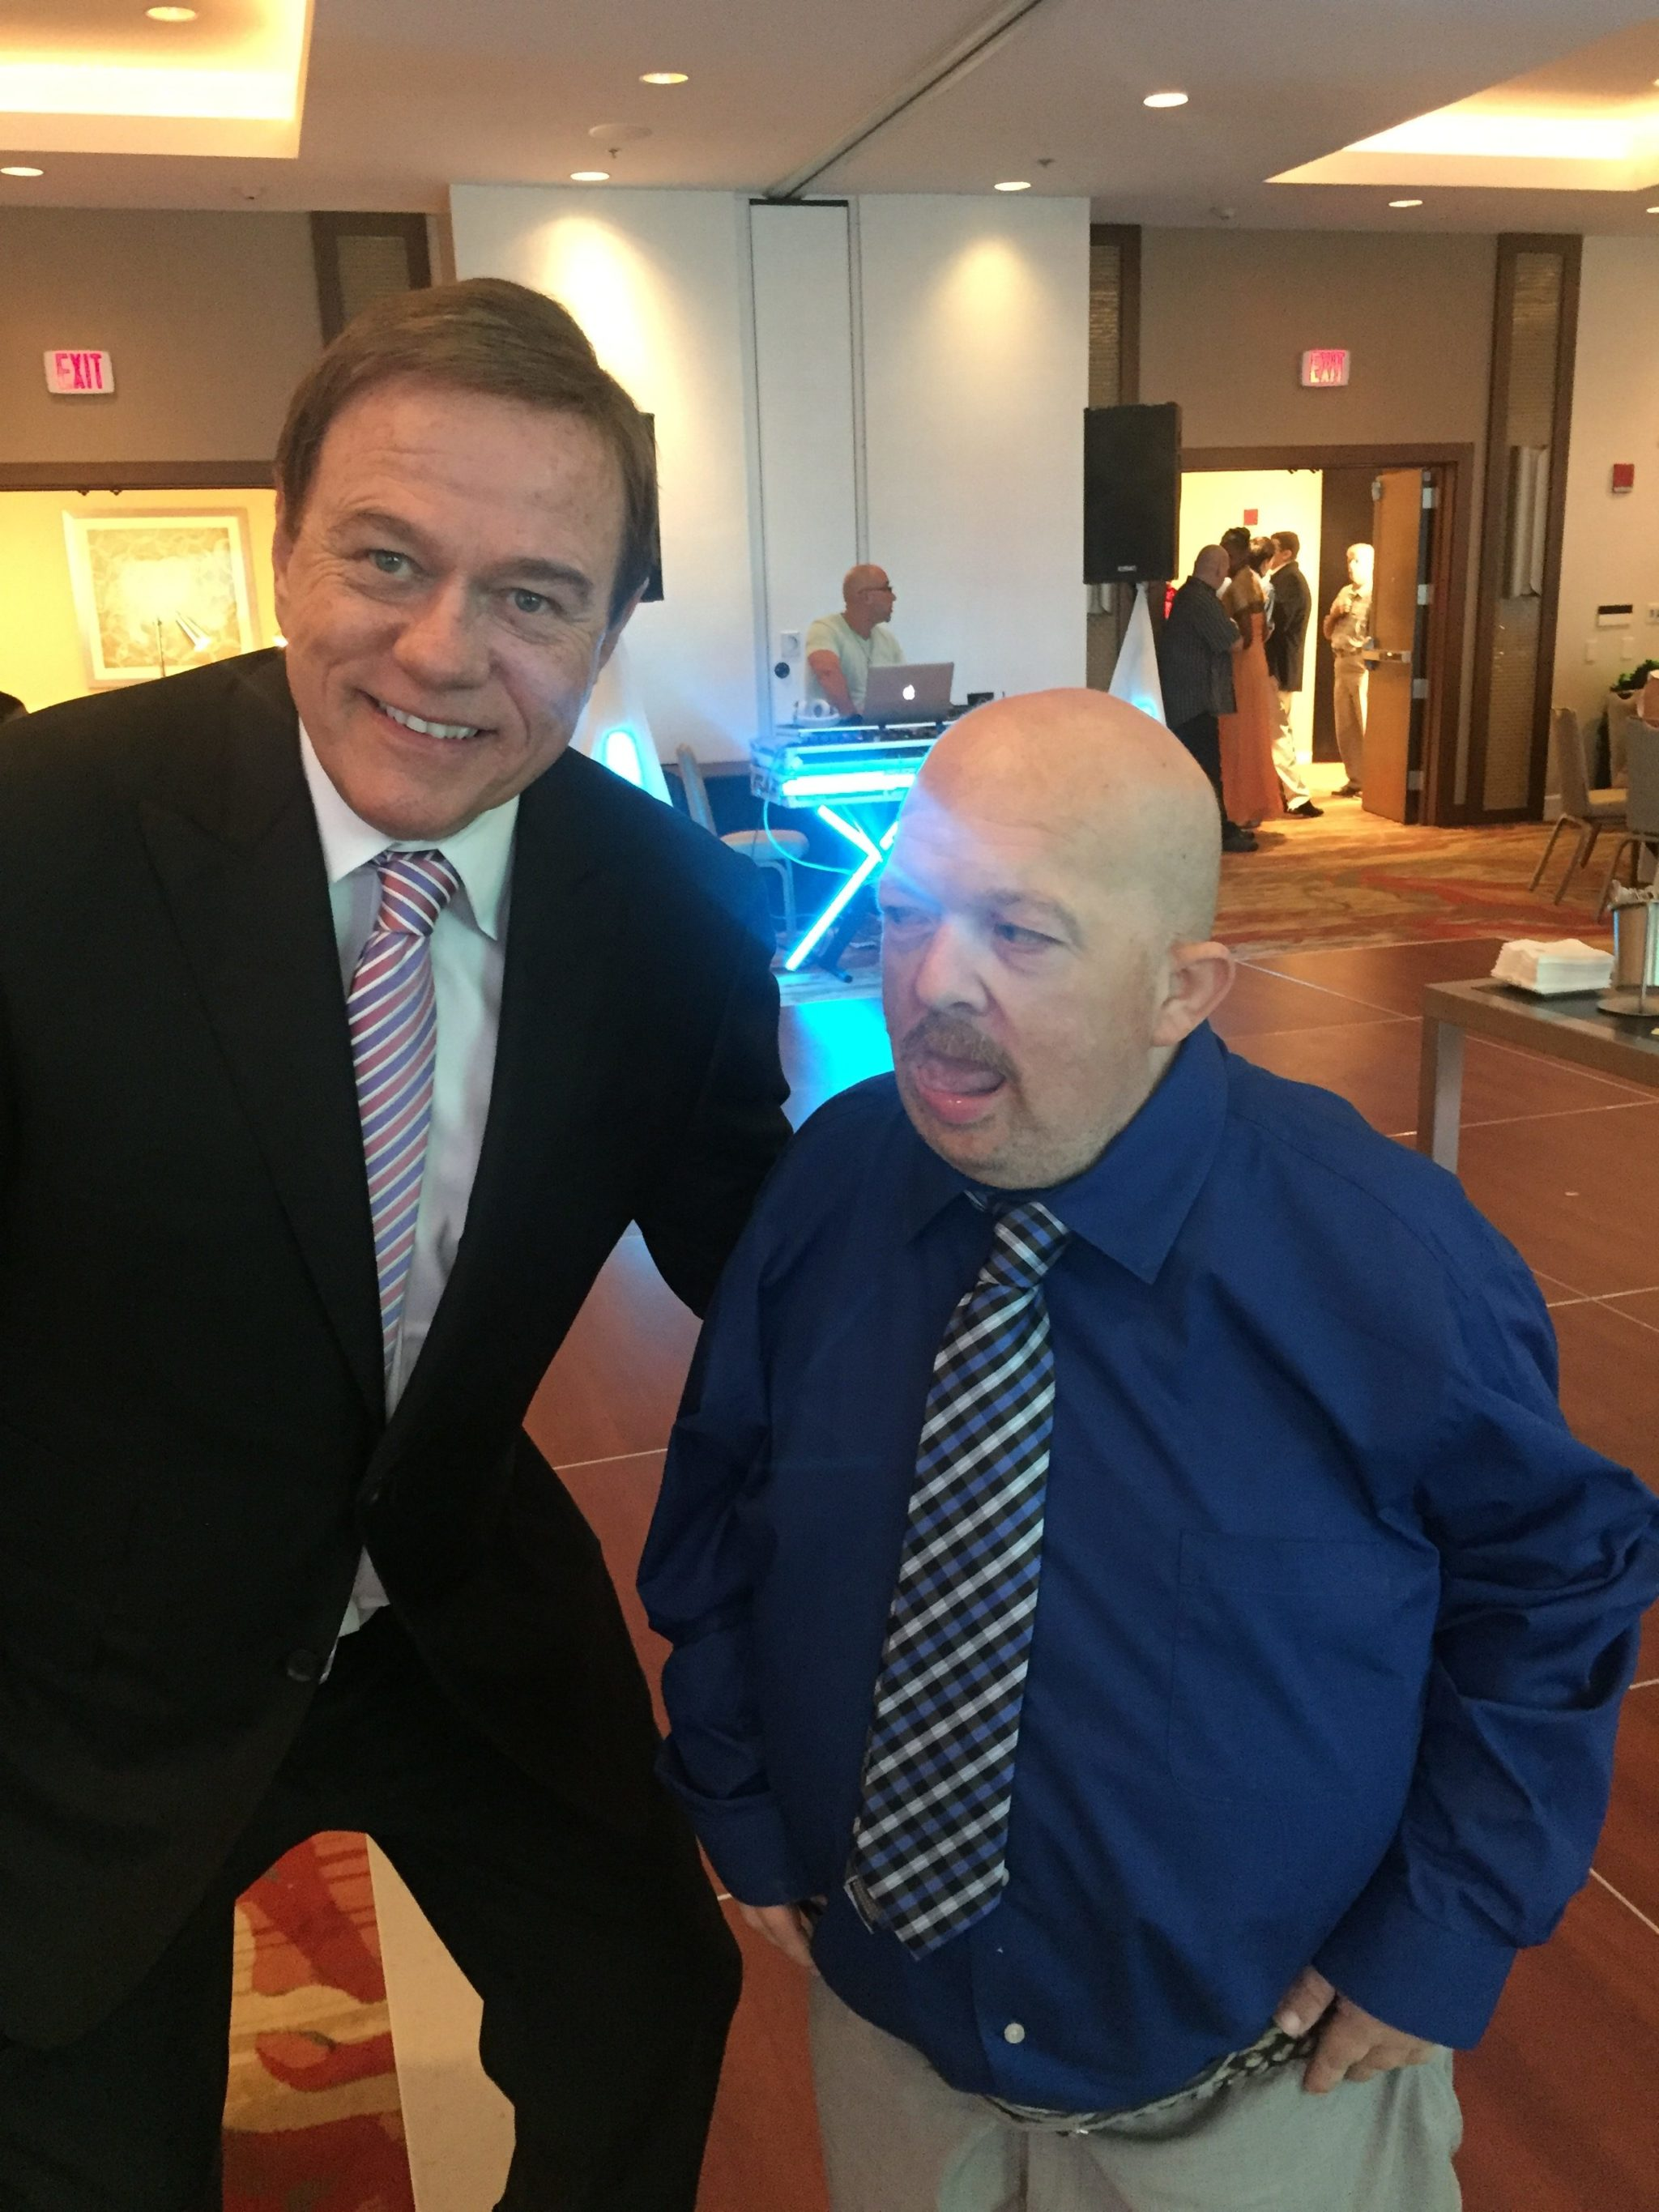 Robert Stack, President & CEO of Community Options with Phil. Phil was the first person to move into our Maryland home. Community Options now supports over 60 people in that state.